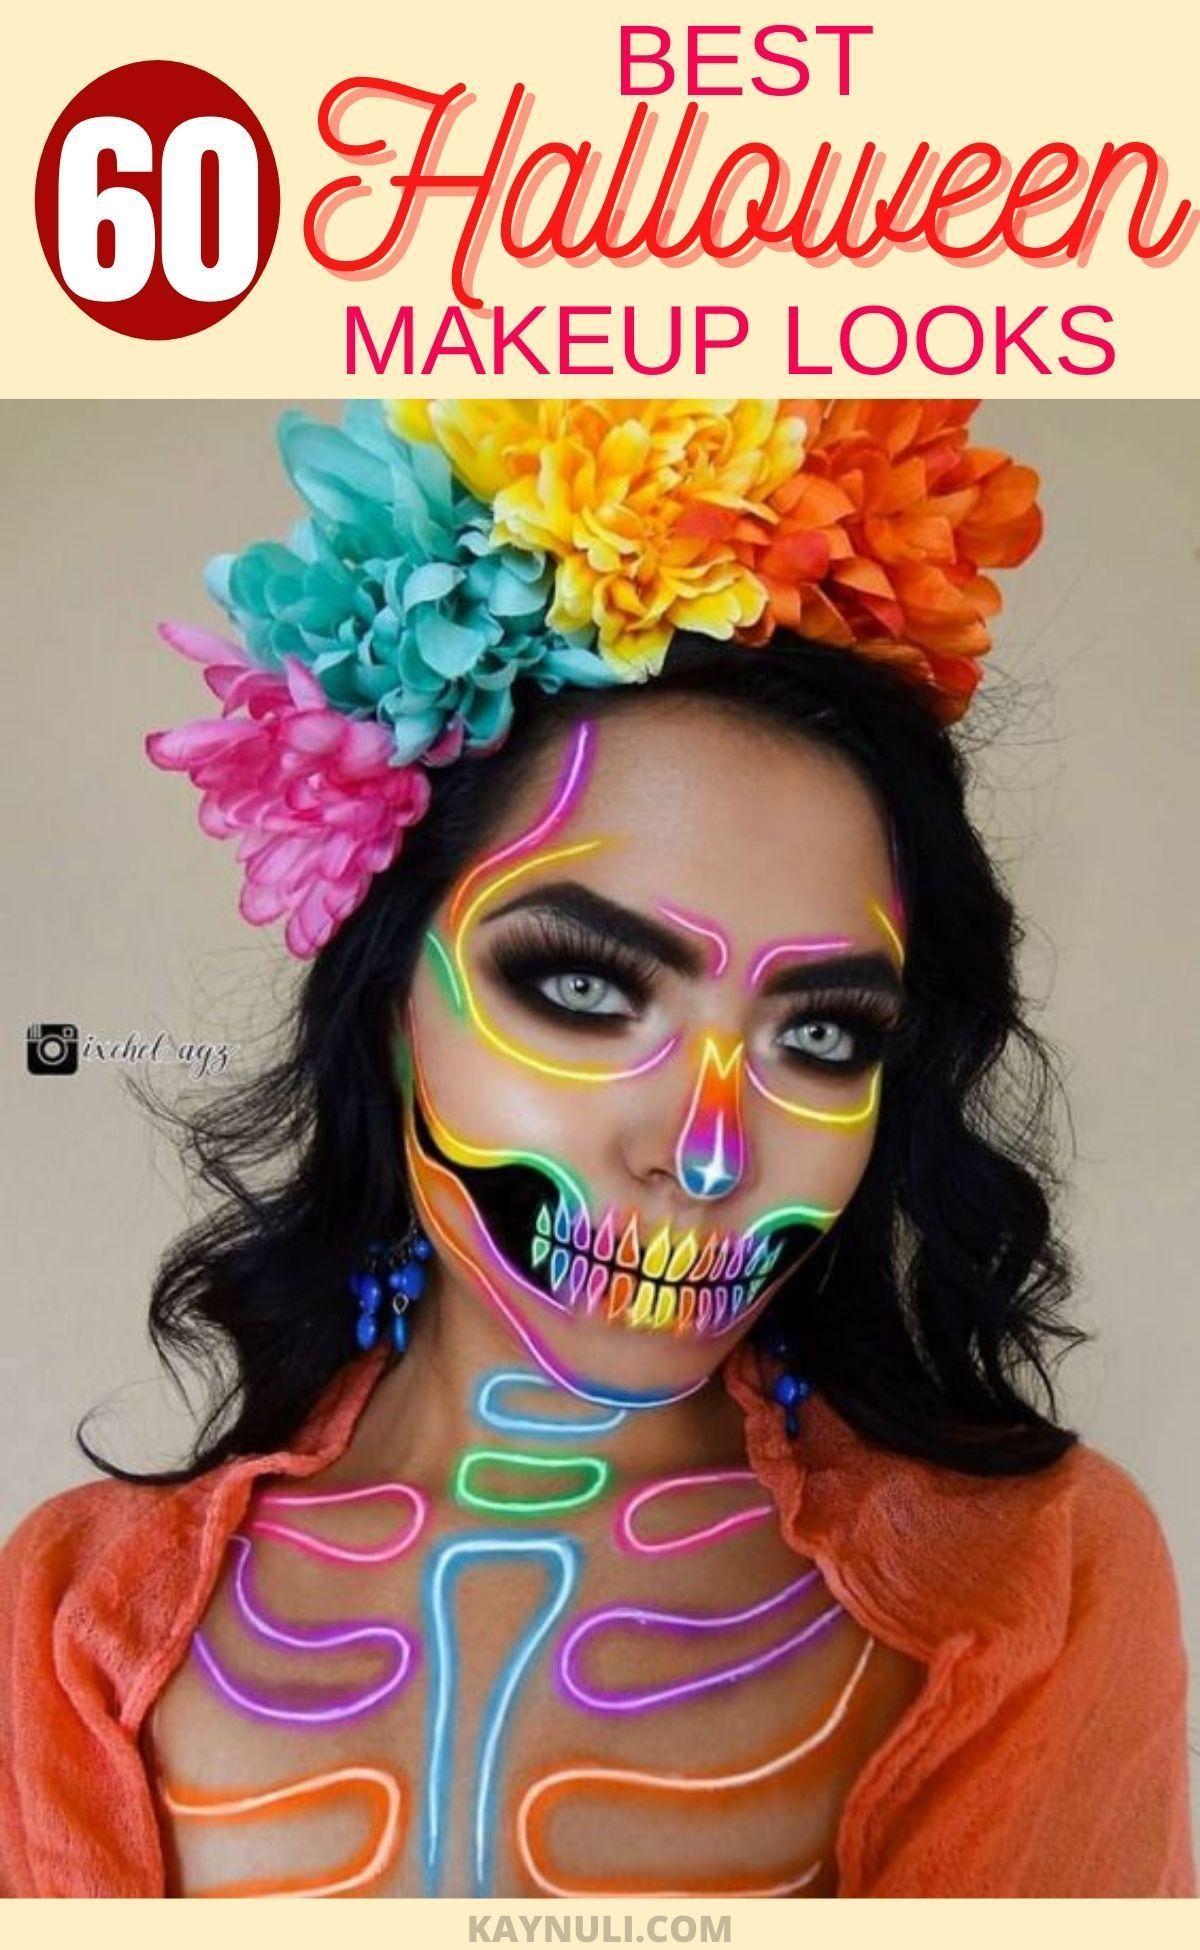 60+ Halloween Makeup Looks That Will Inspire You KAYNULI